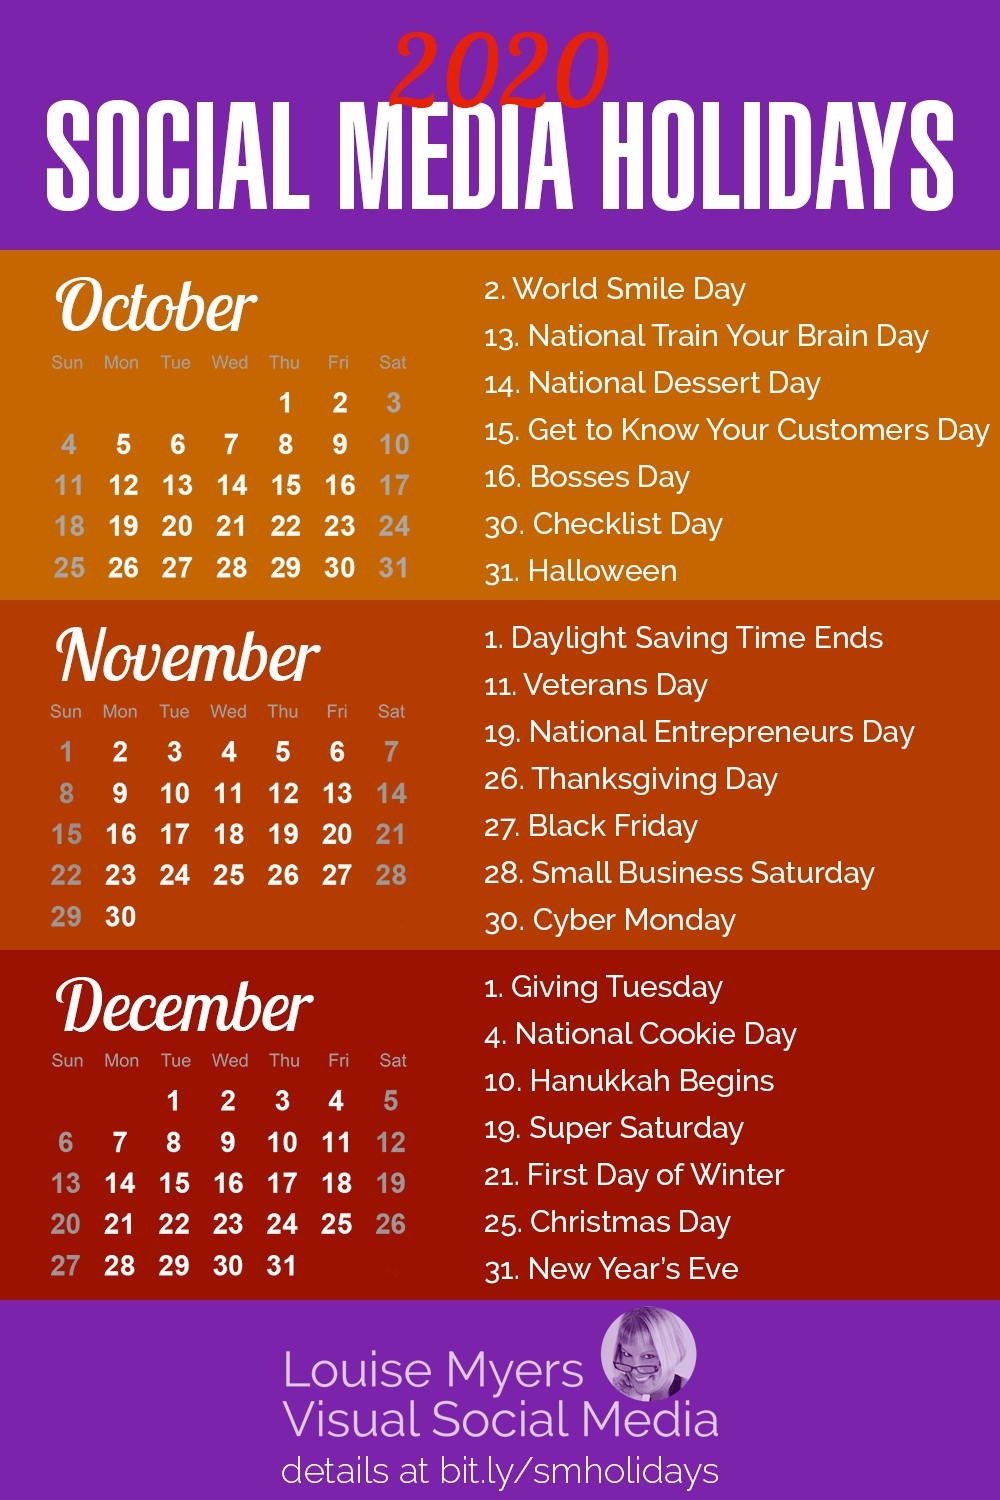 84 Social Media Holidays You Need In 2020: Indispensable! pertaining to 2020 Special Days Of The Year